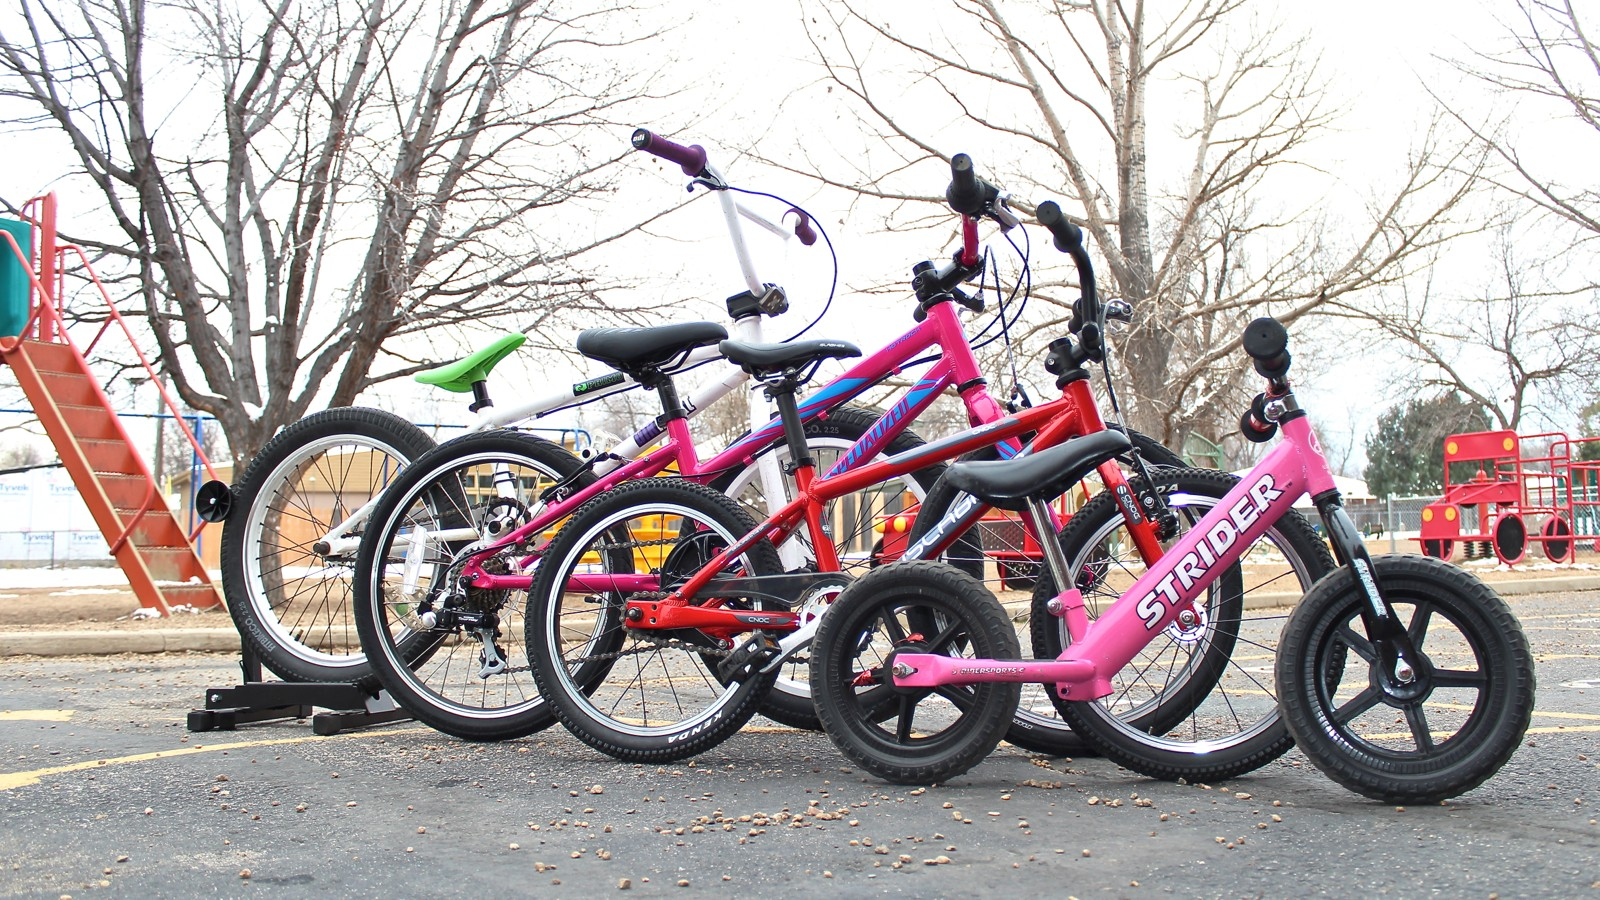 Finding the right kids' bike takes a little time and care, but will make someone very happy